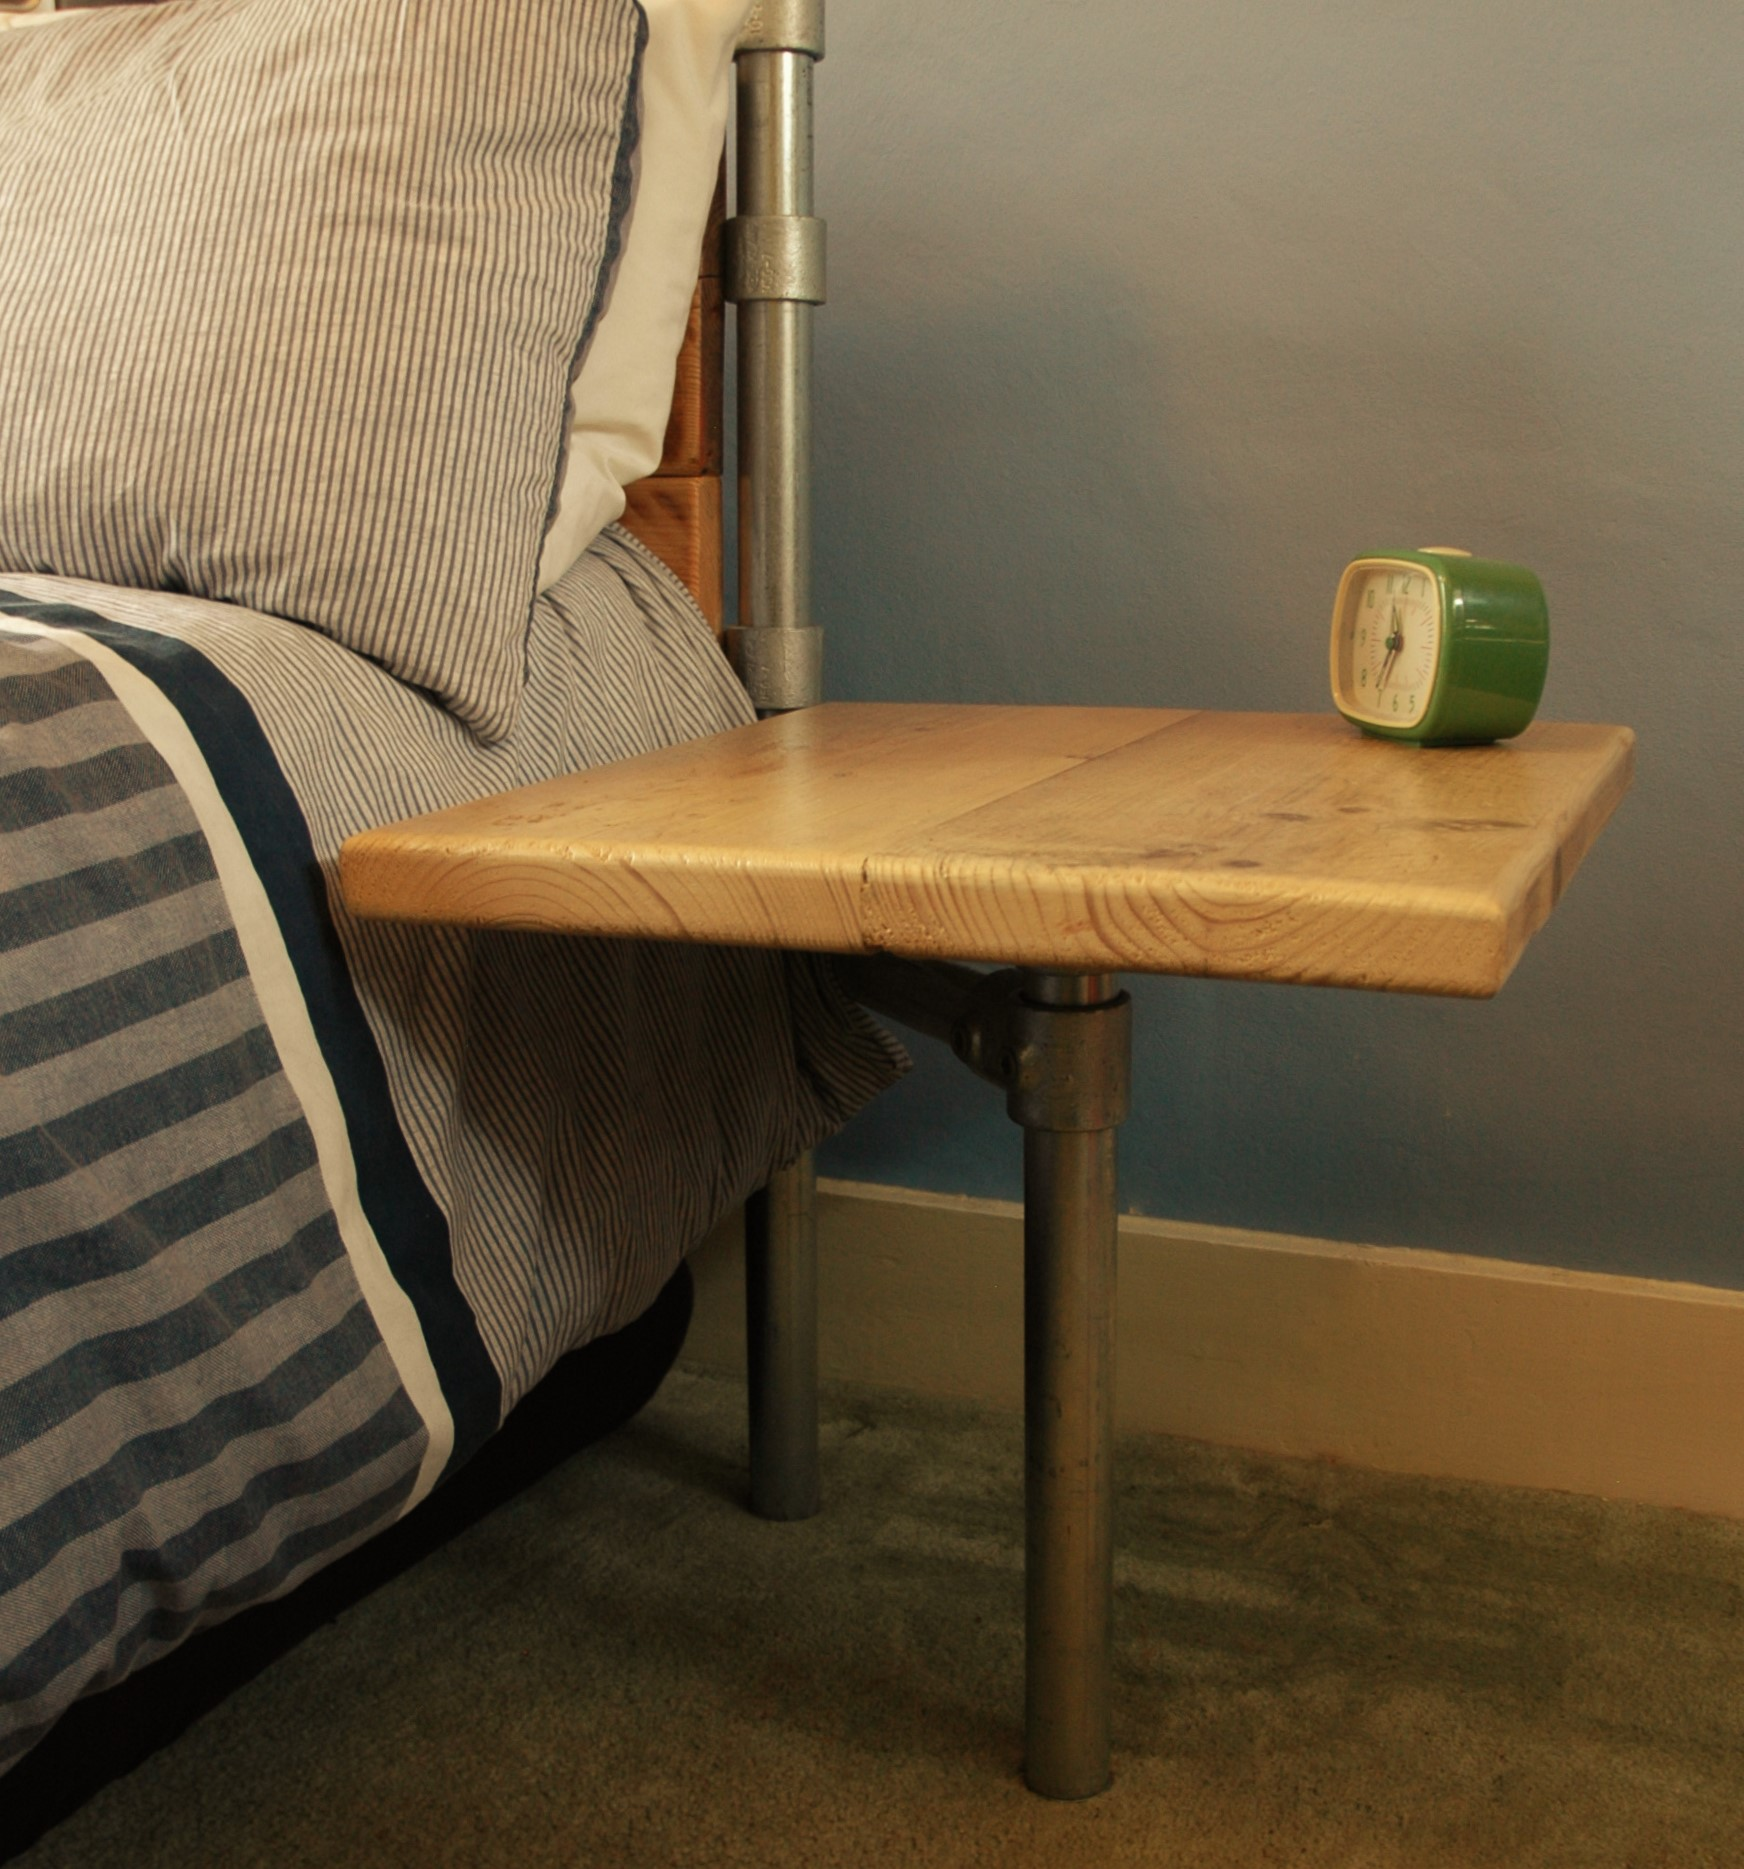 Cantilever Bed Side Table & Cantilever Bed Side Table - Colwill and Co.